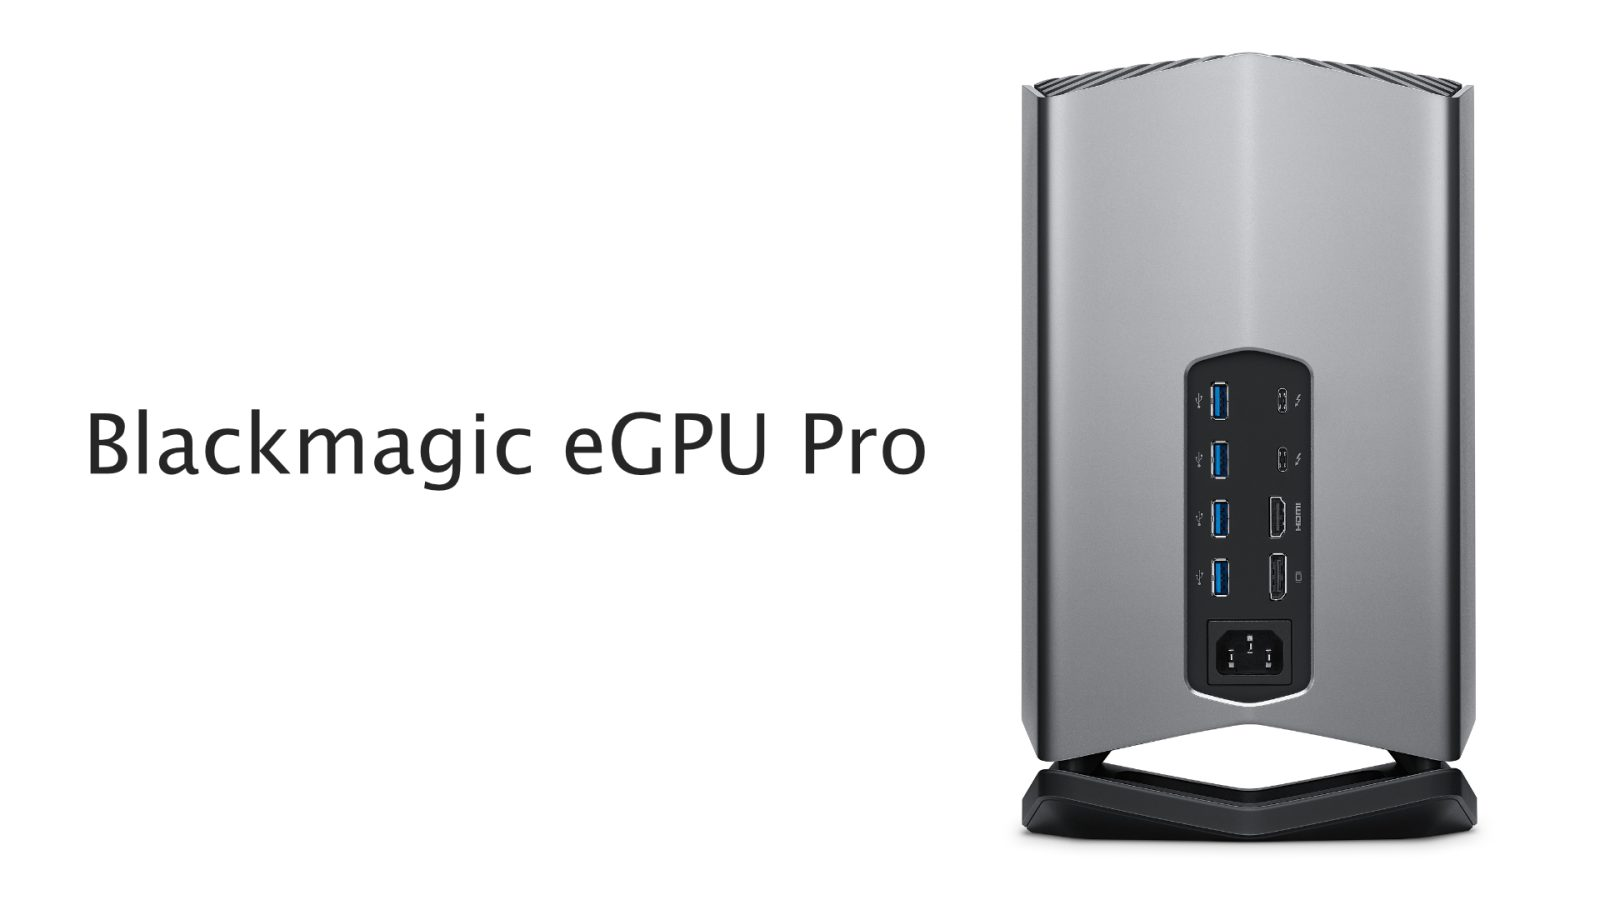 Blackmagic Design launches new eGPU Pro with Radeon RX Vega